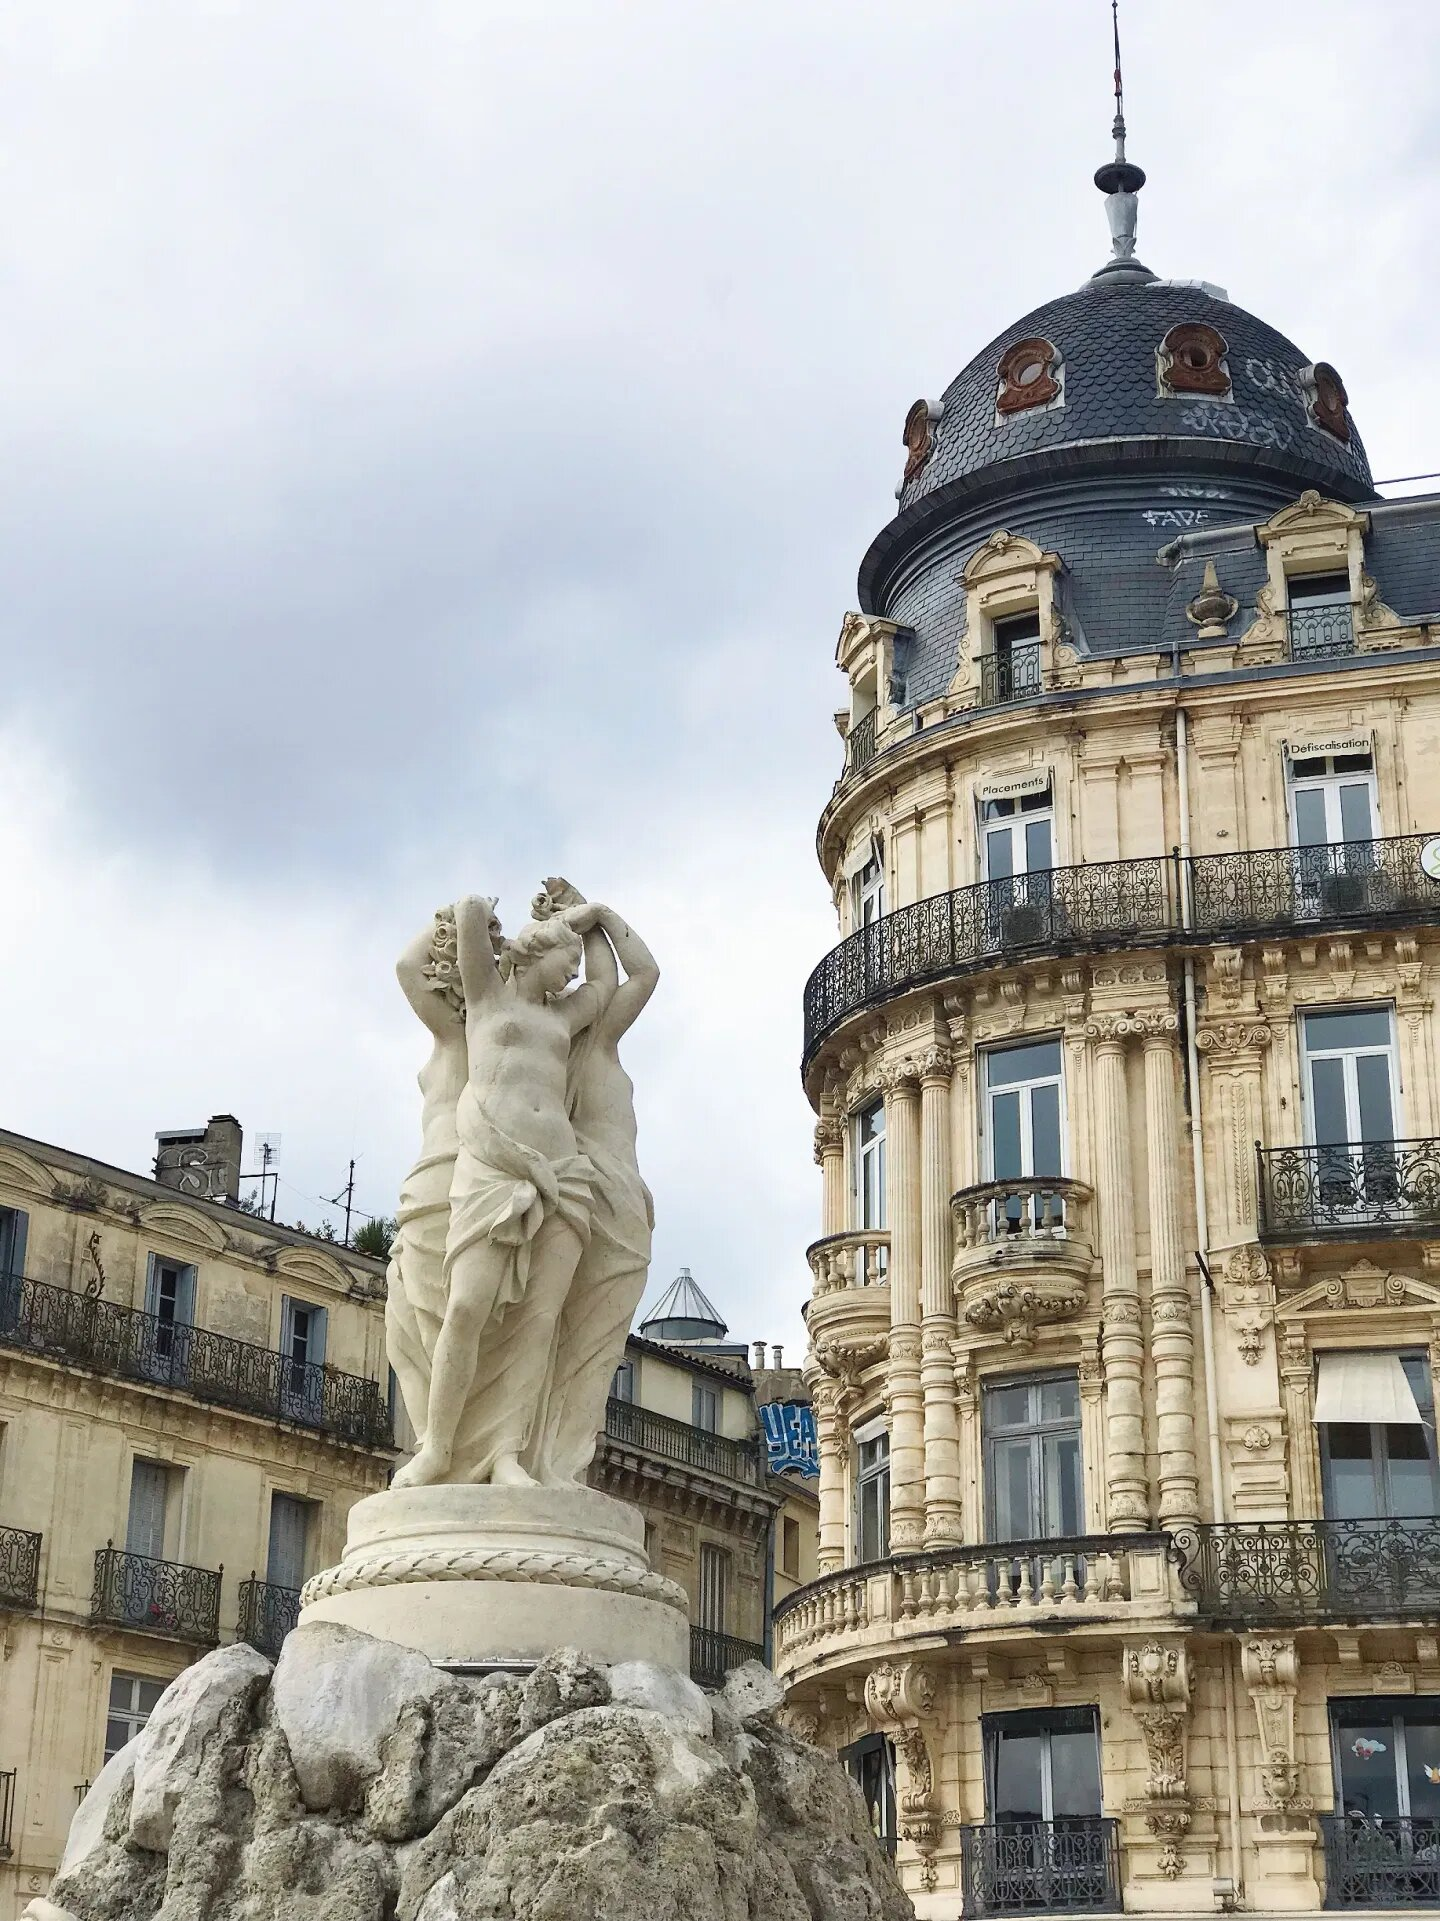 For a wonderful stay in the heart of Montpellier